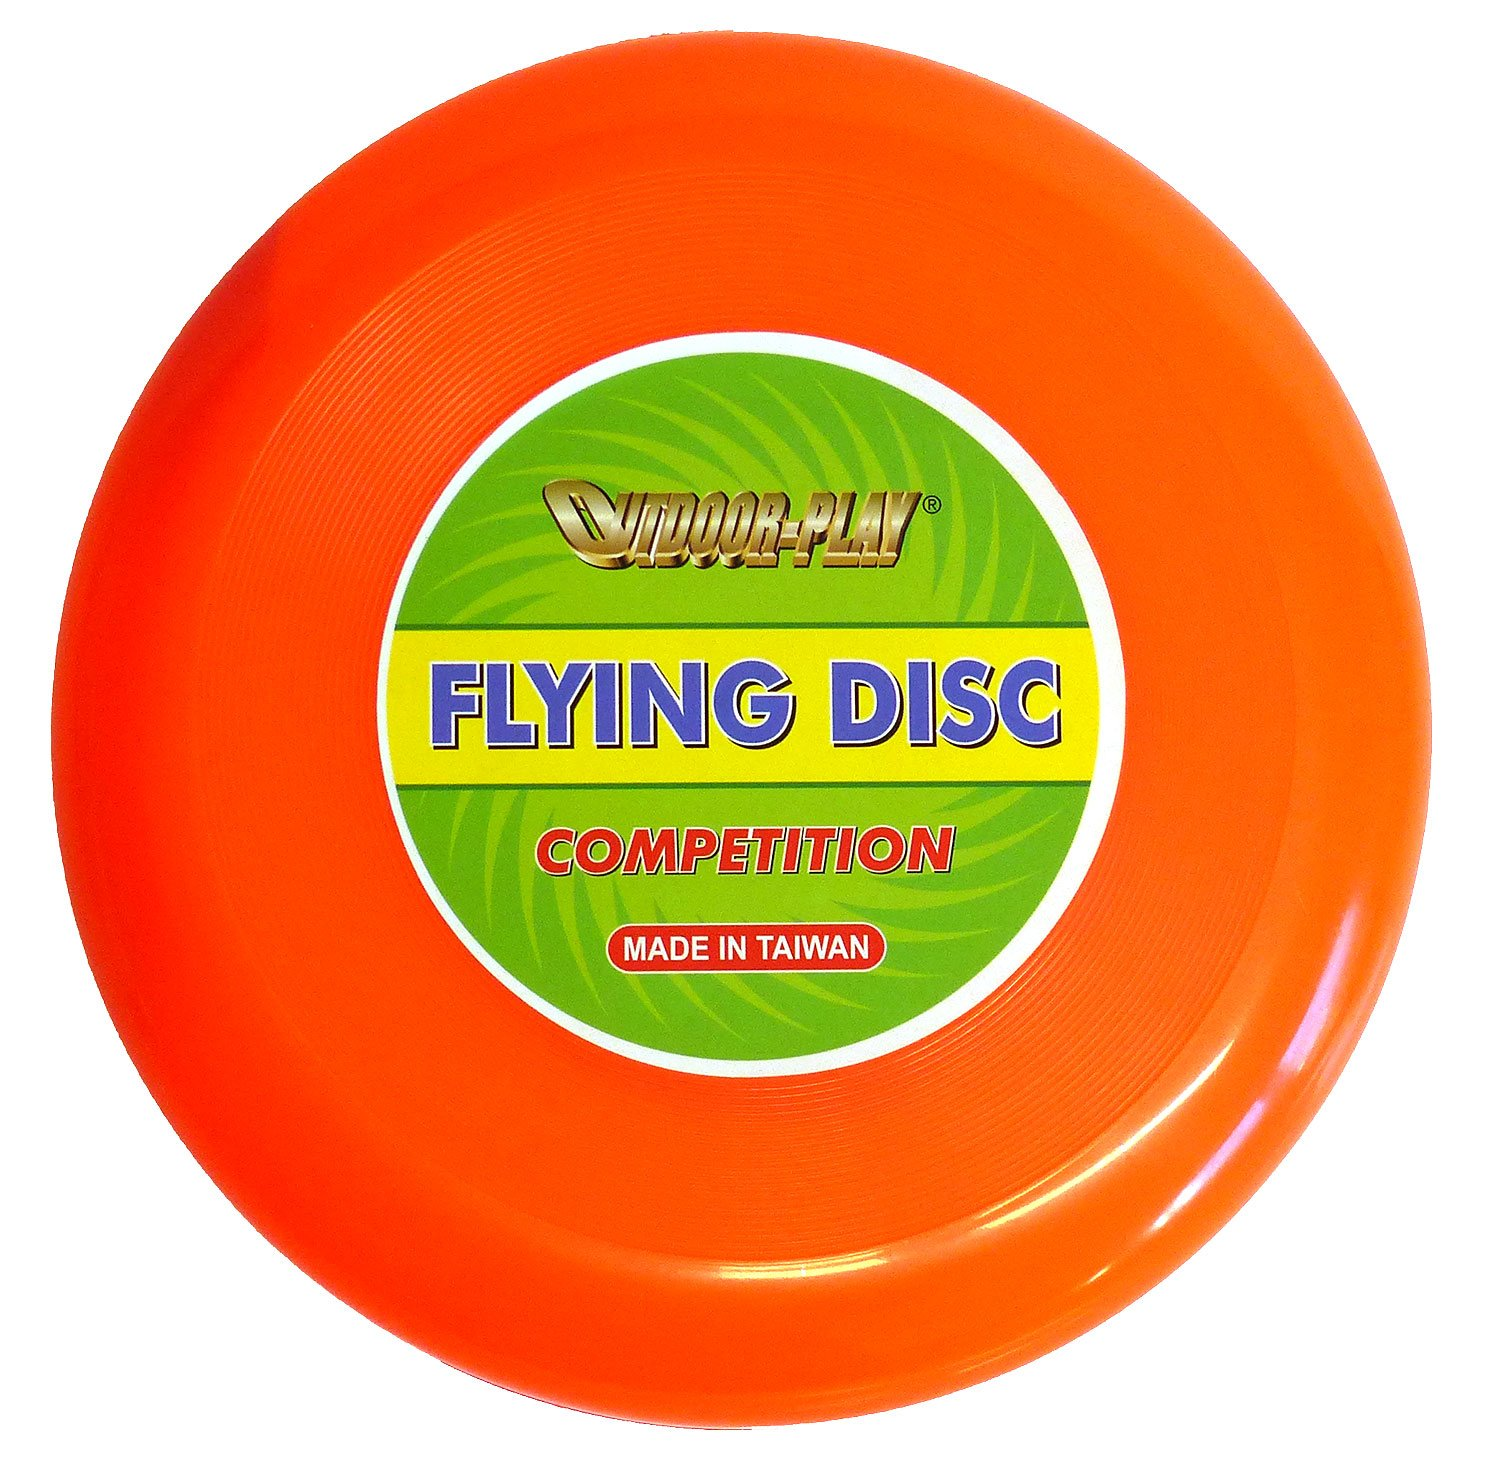 Outdoor Play Flying Disc Frisbee | Competició n (Diá metro DE 28  cm Competition con Vuelo Excelente, Neon Naranja JC-175A